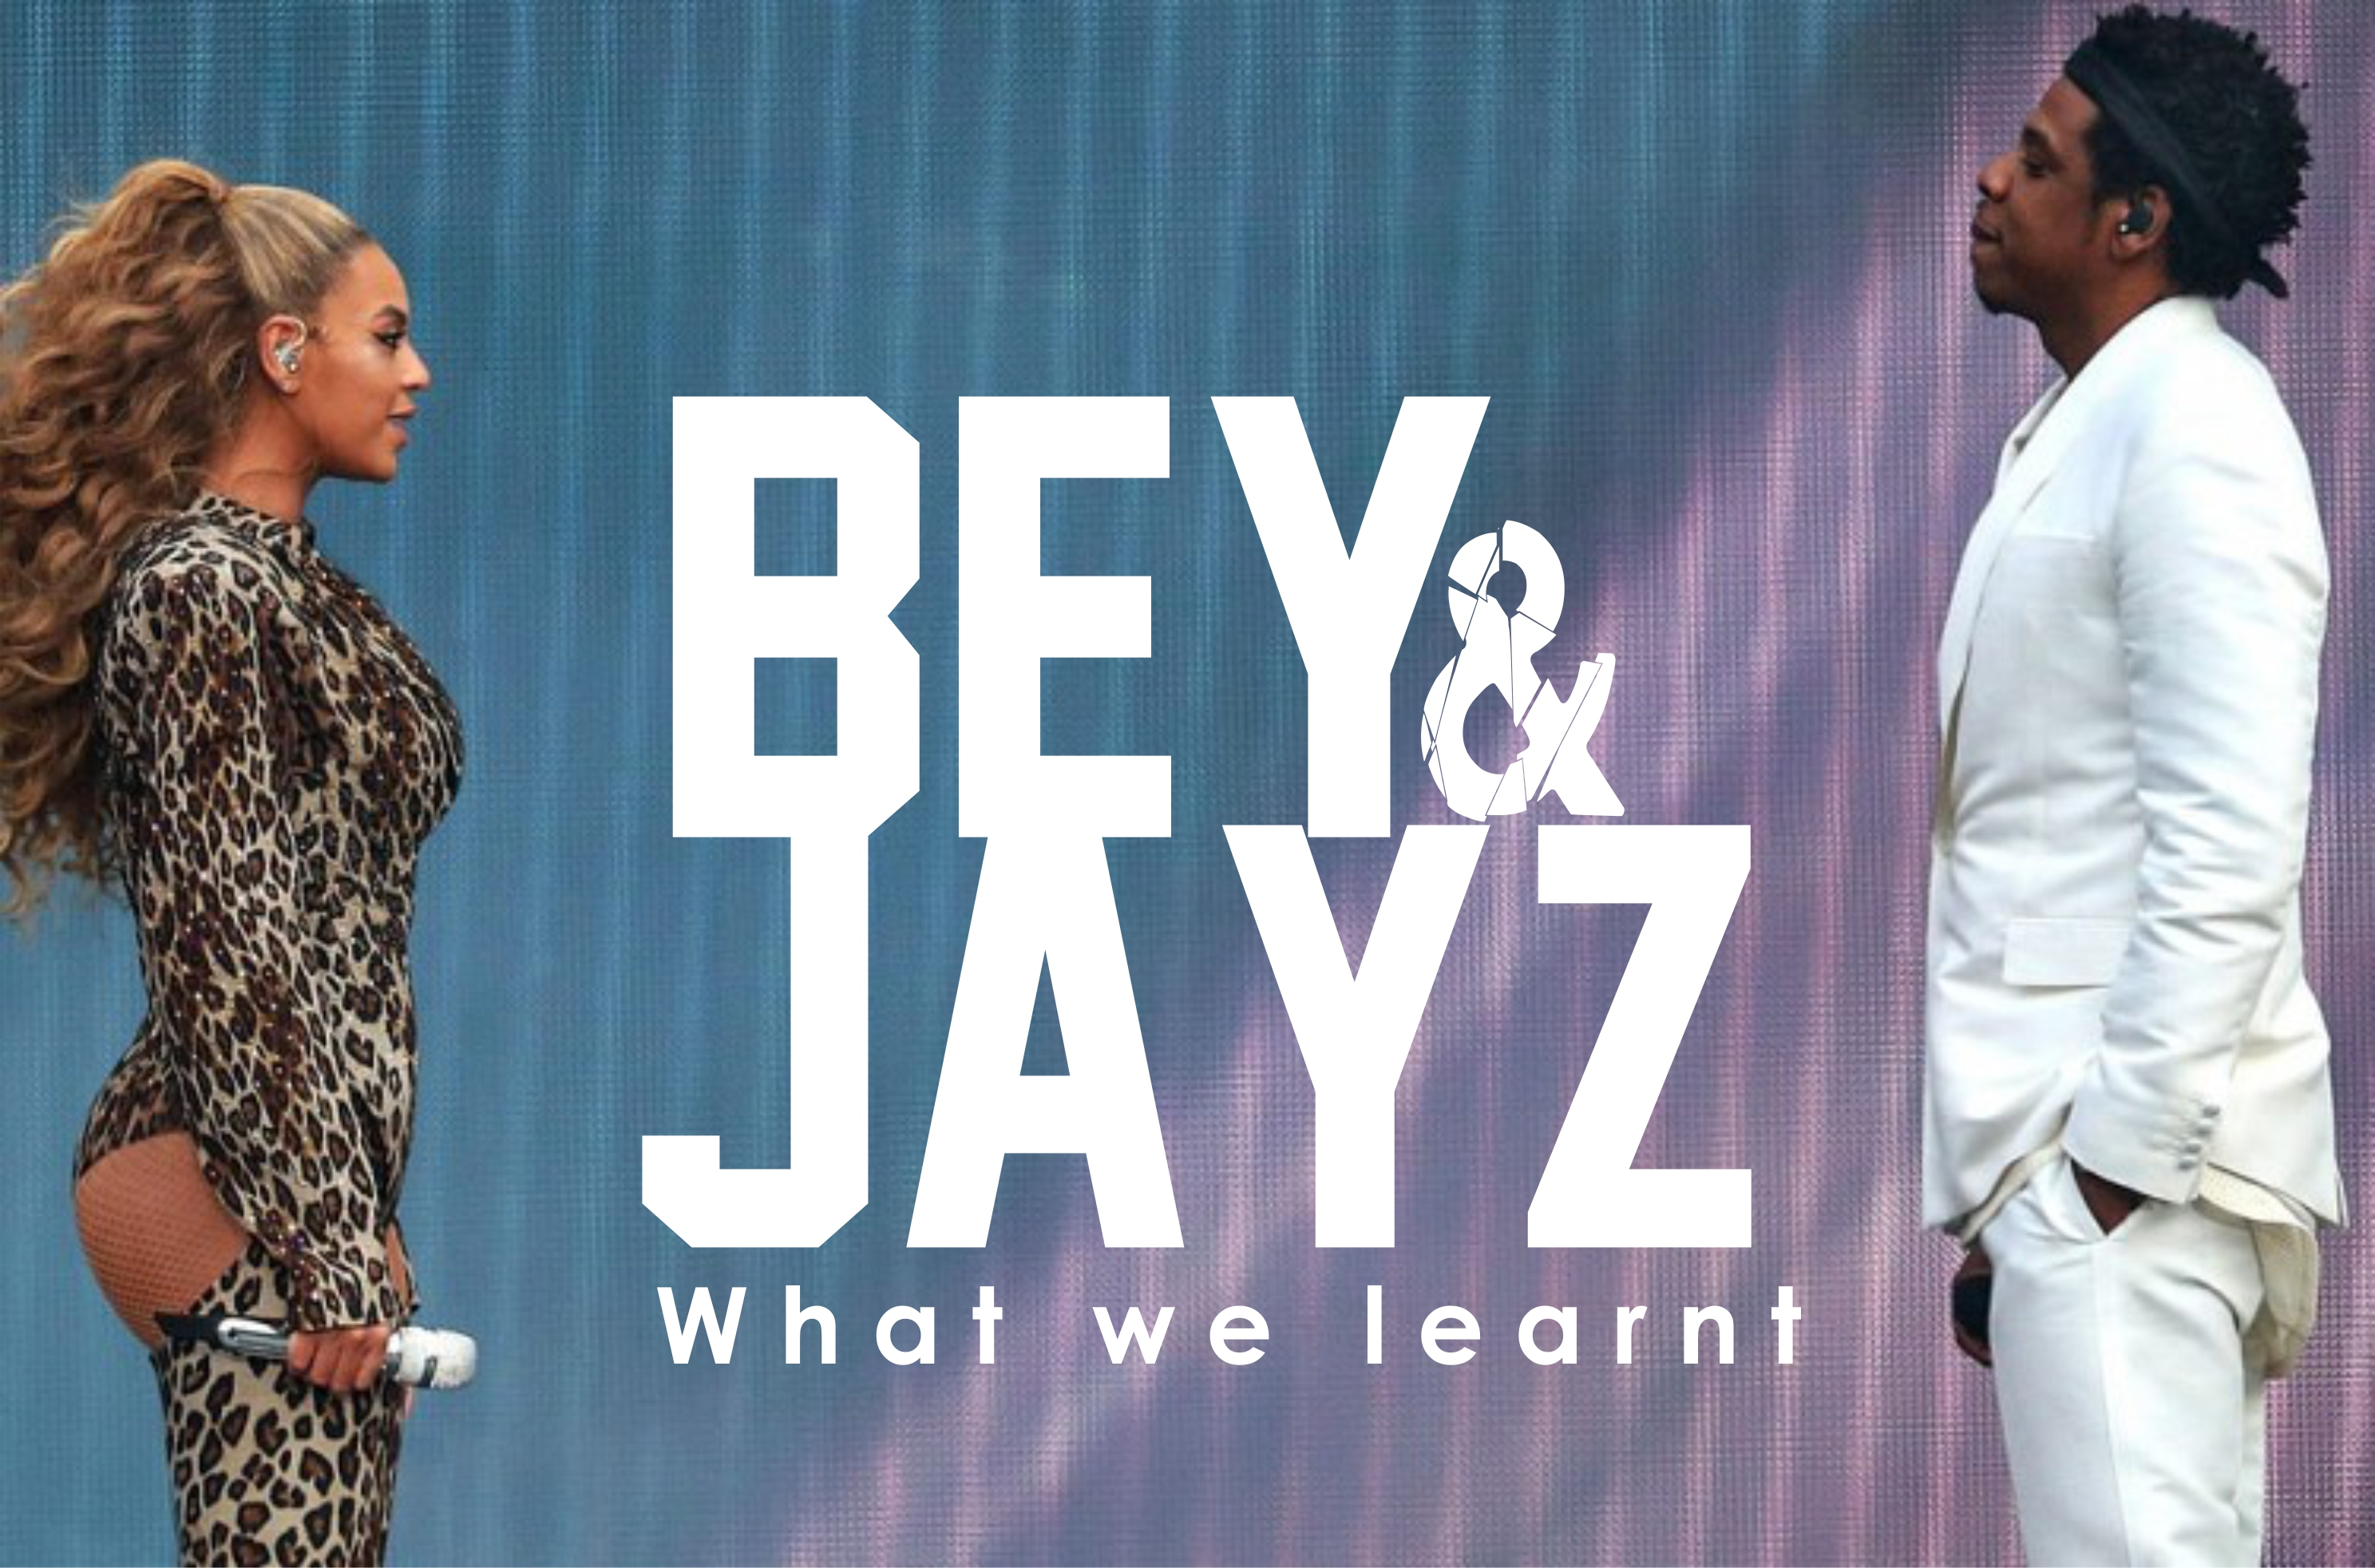 Bey & JayZ- what we learnt…